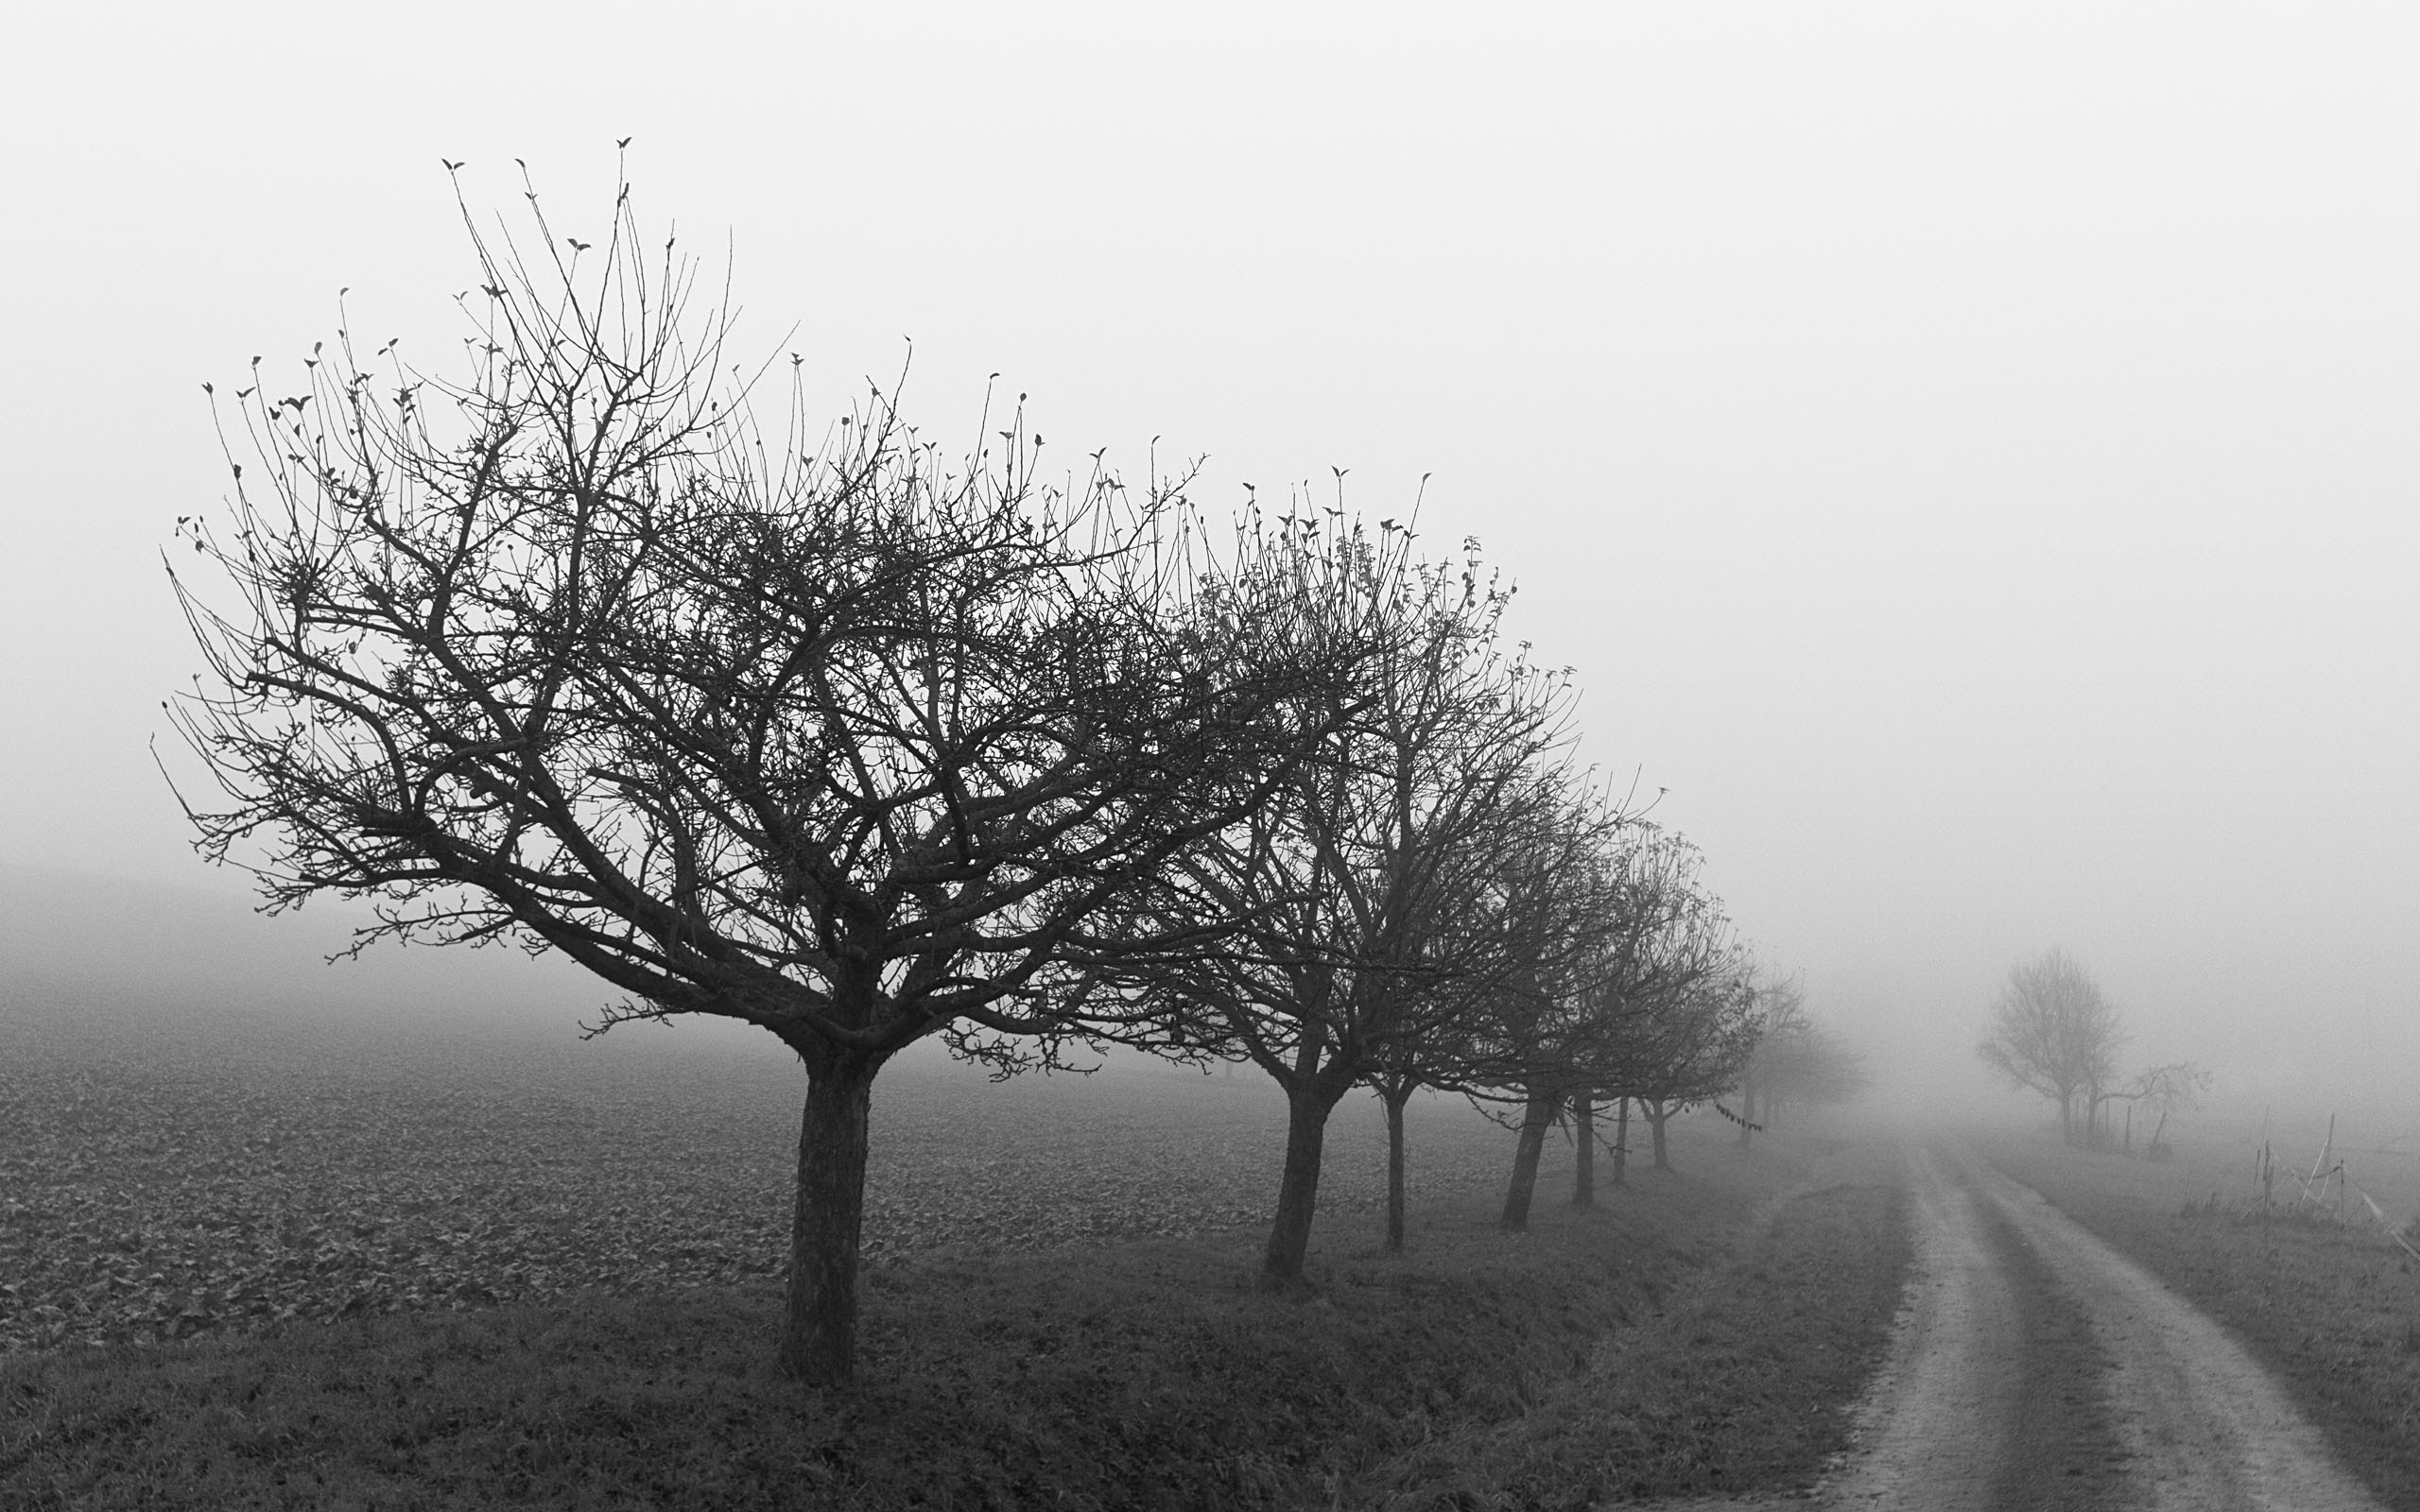 Black And White Images Of Trees 12 Background Wallpaper